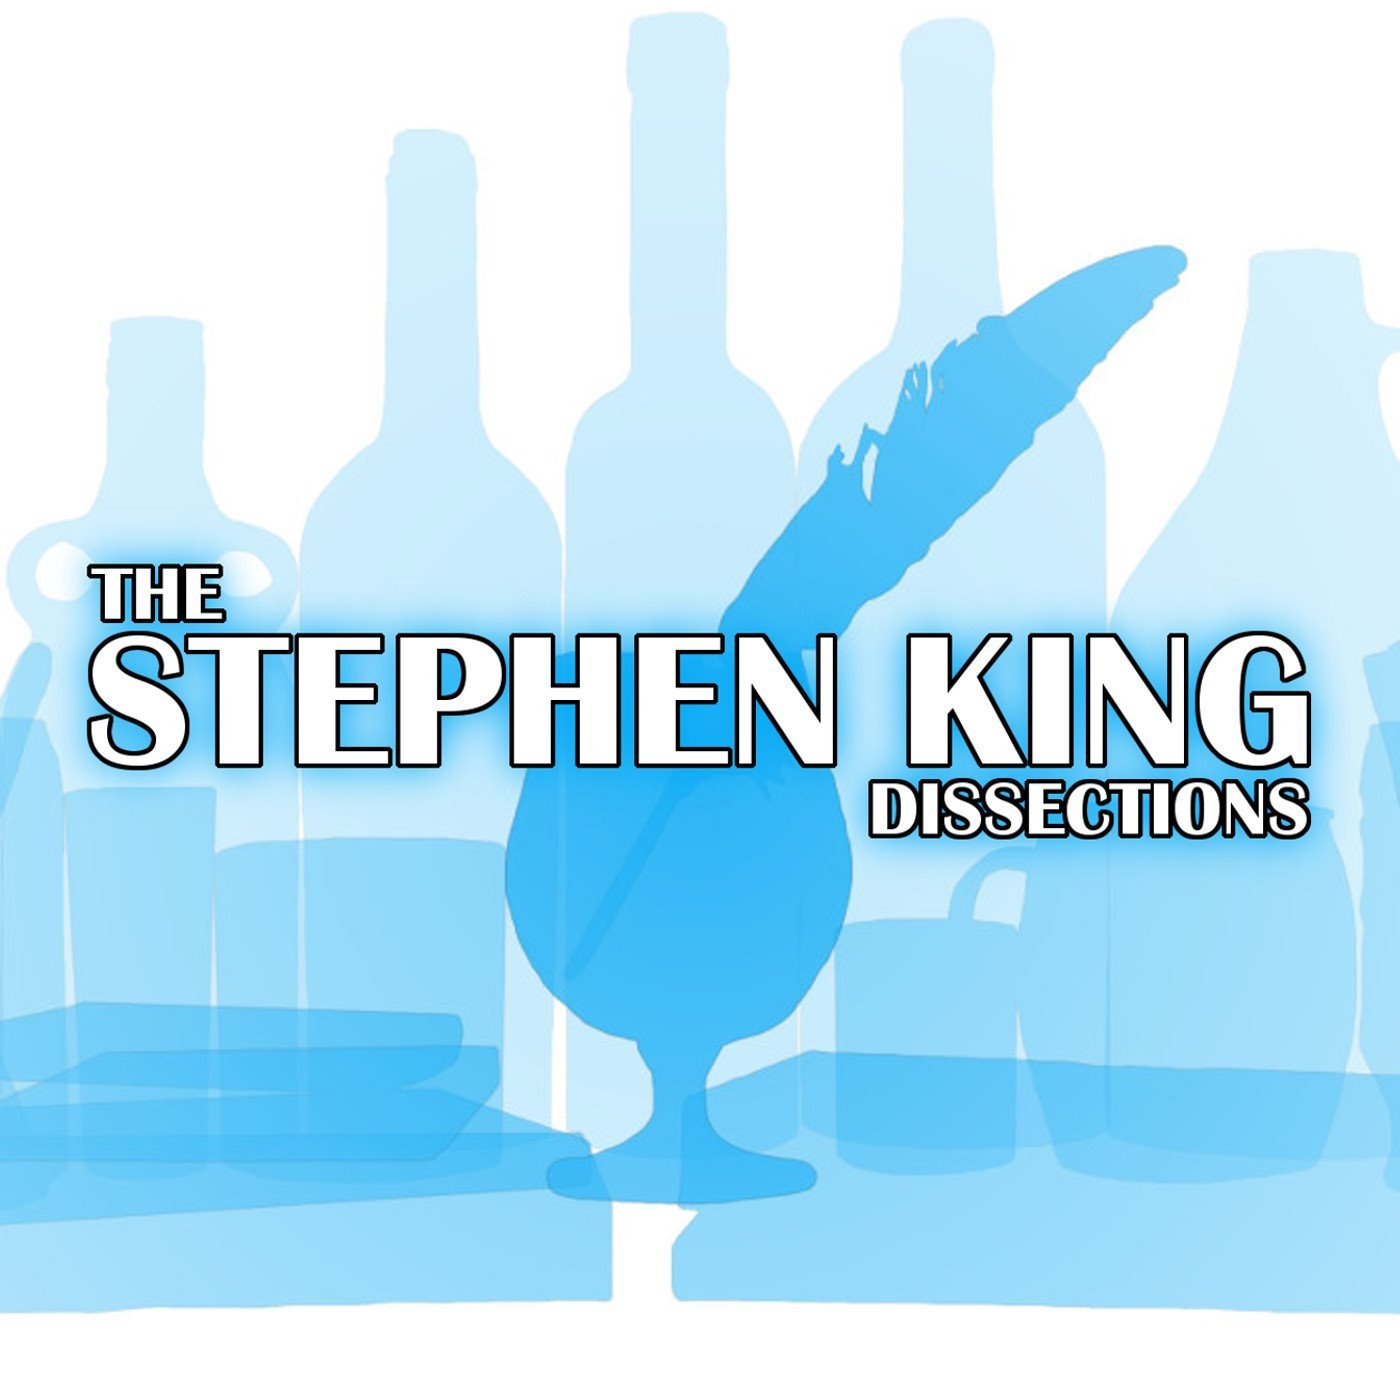 Is Stephen King's THE STAND Too Long?